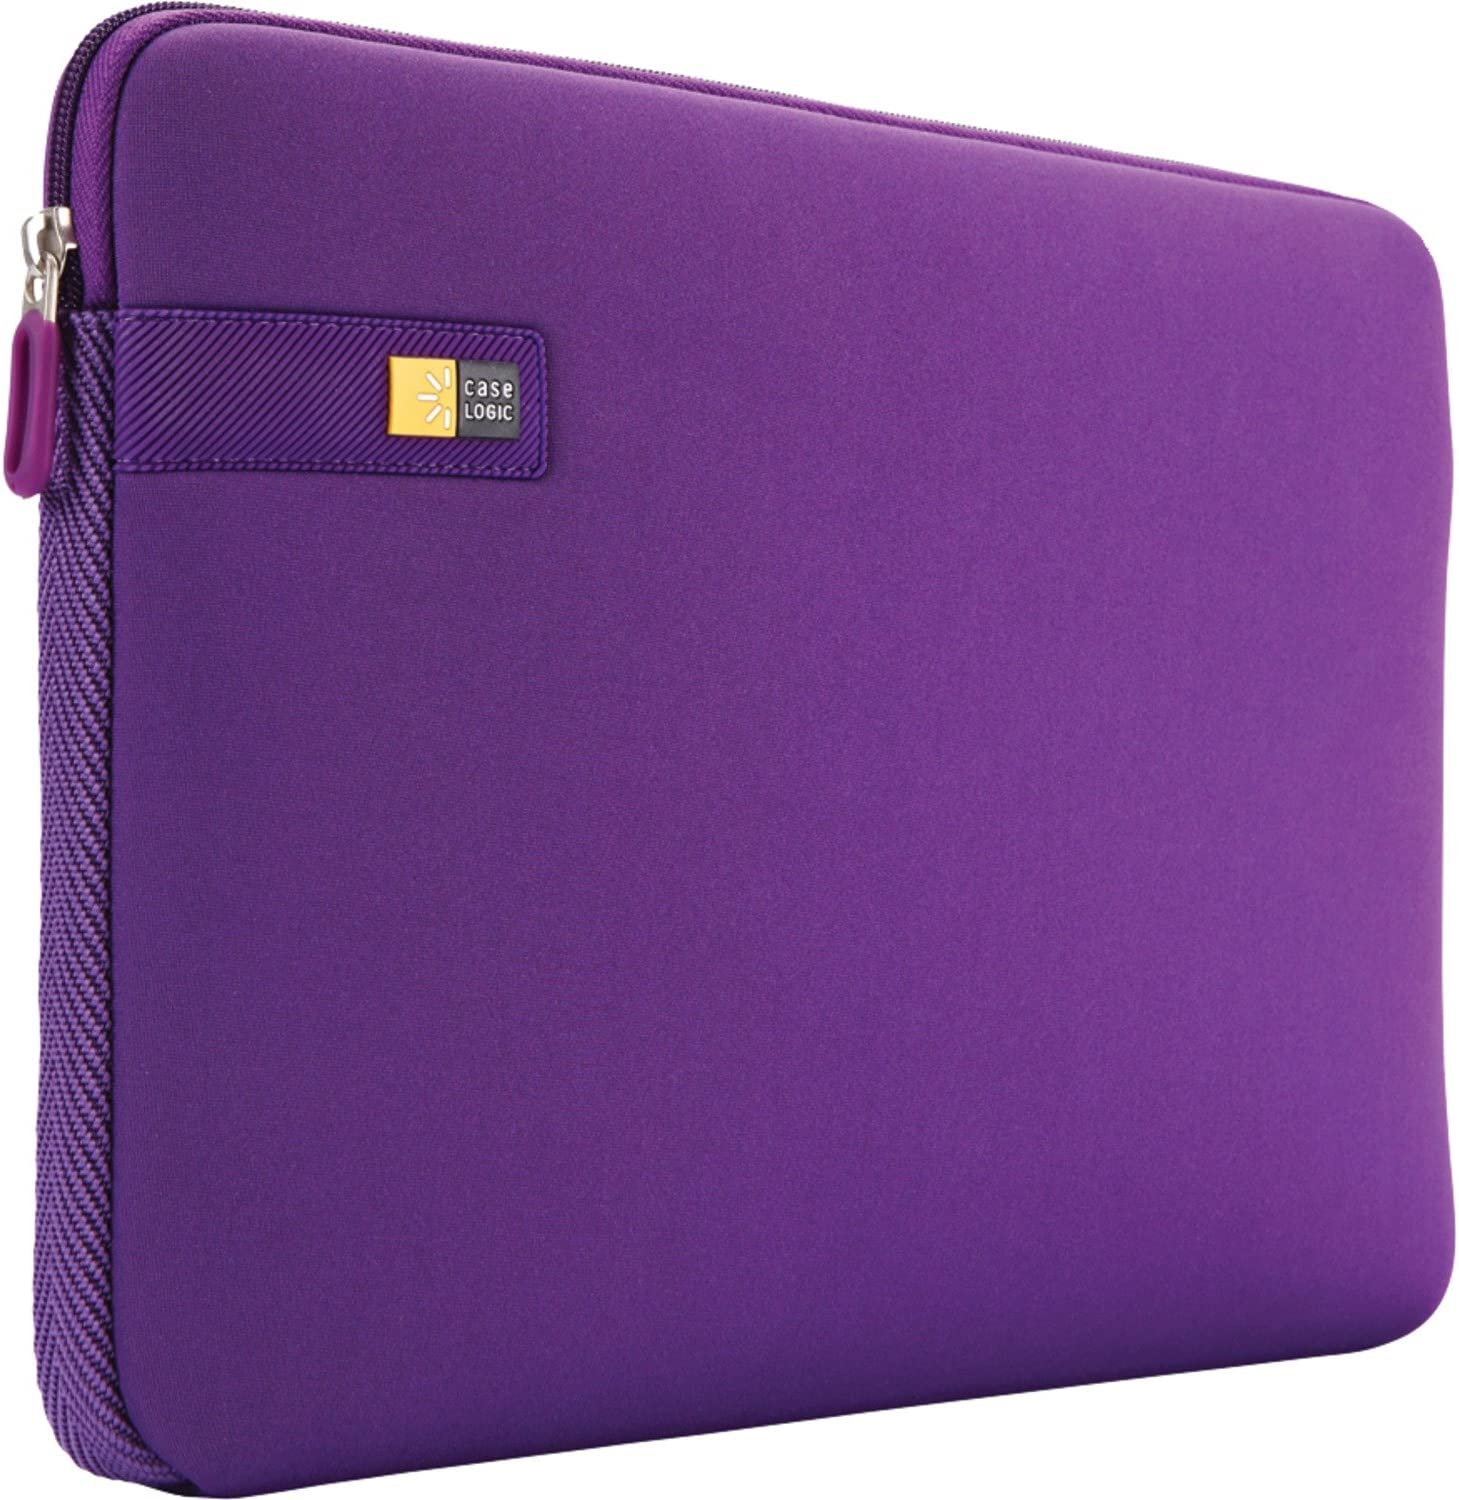 "Case Logic Laptop Sleeve 15-16"", Purple (LAPS-116PU)"